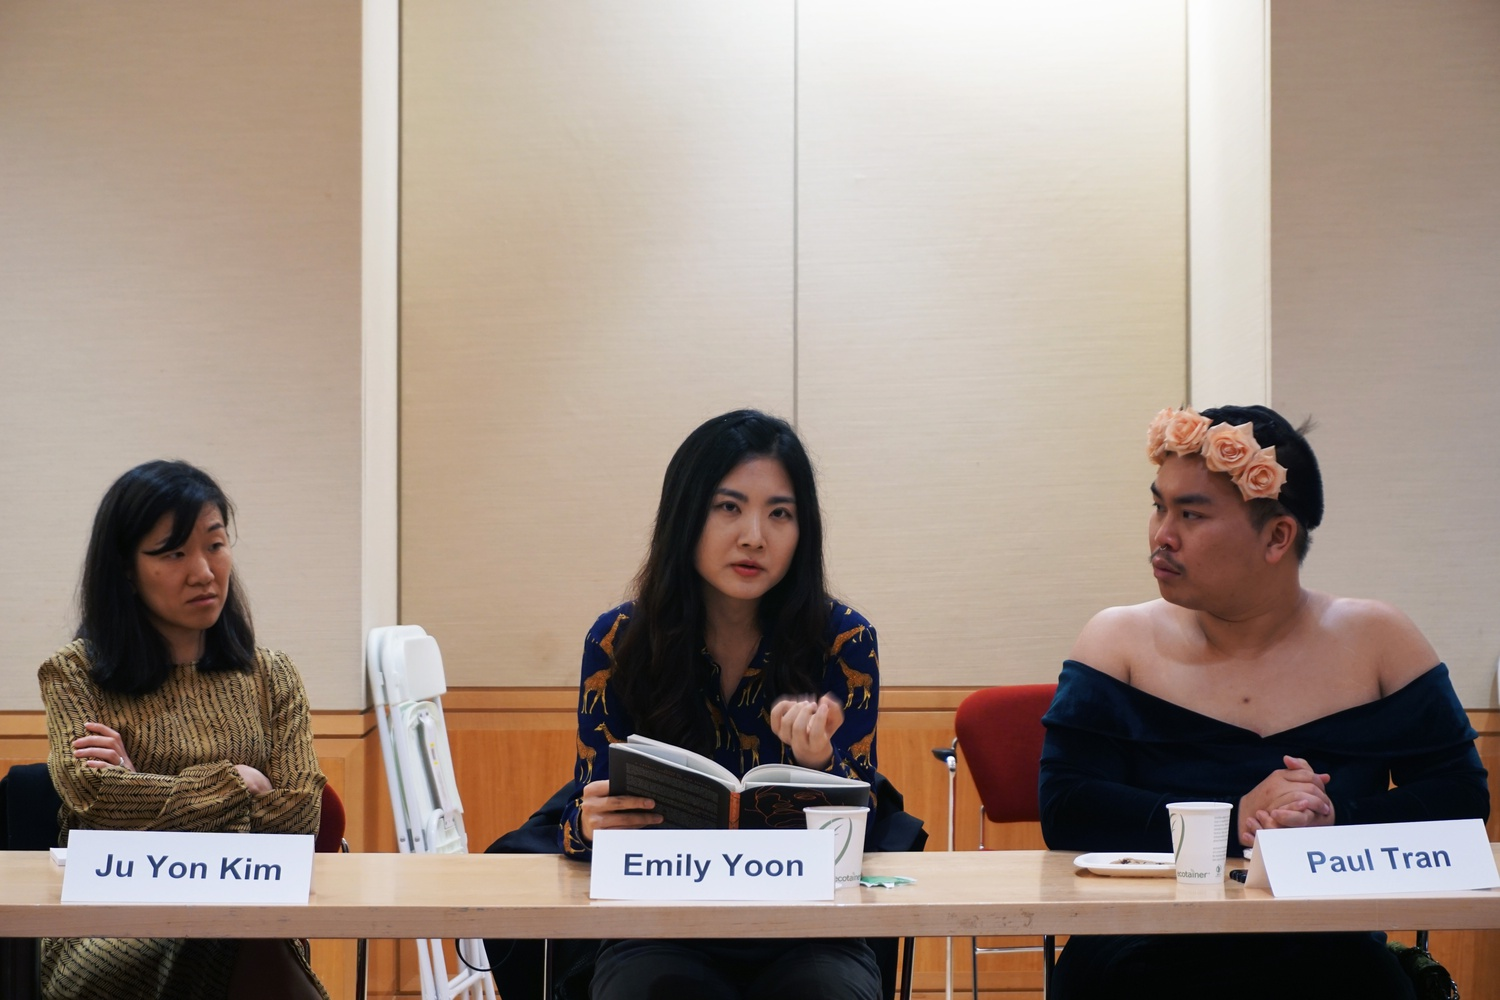 Professor Ju Yon Kim facilitated the event featuring poets Tamiko Beyer, Emily Yoon, and Paul Tran.